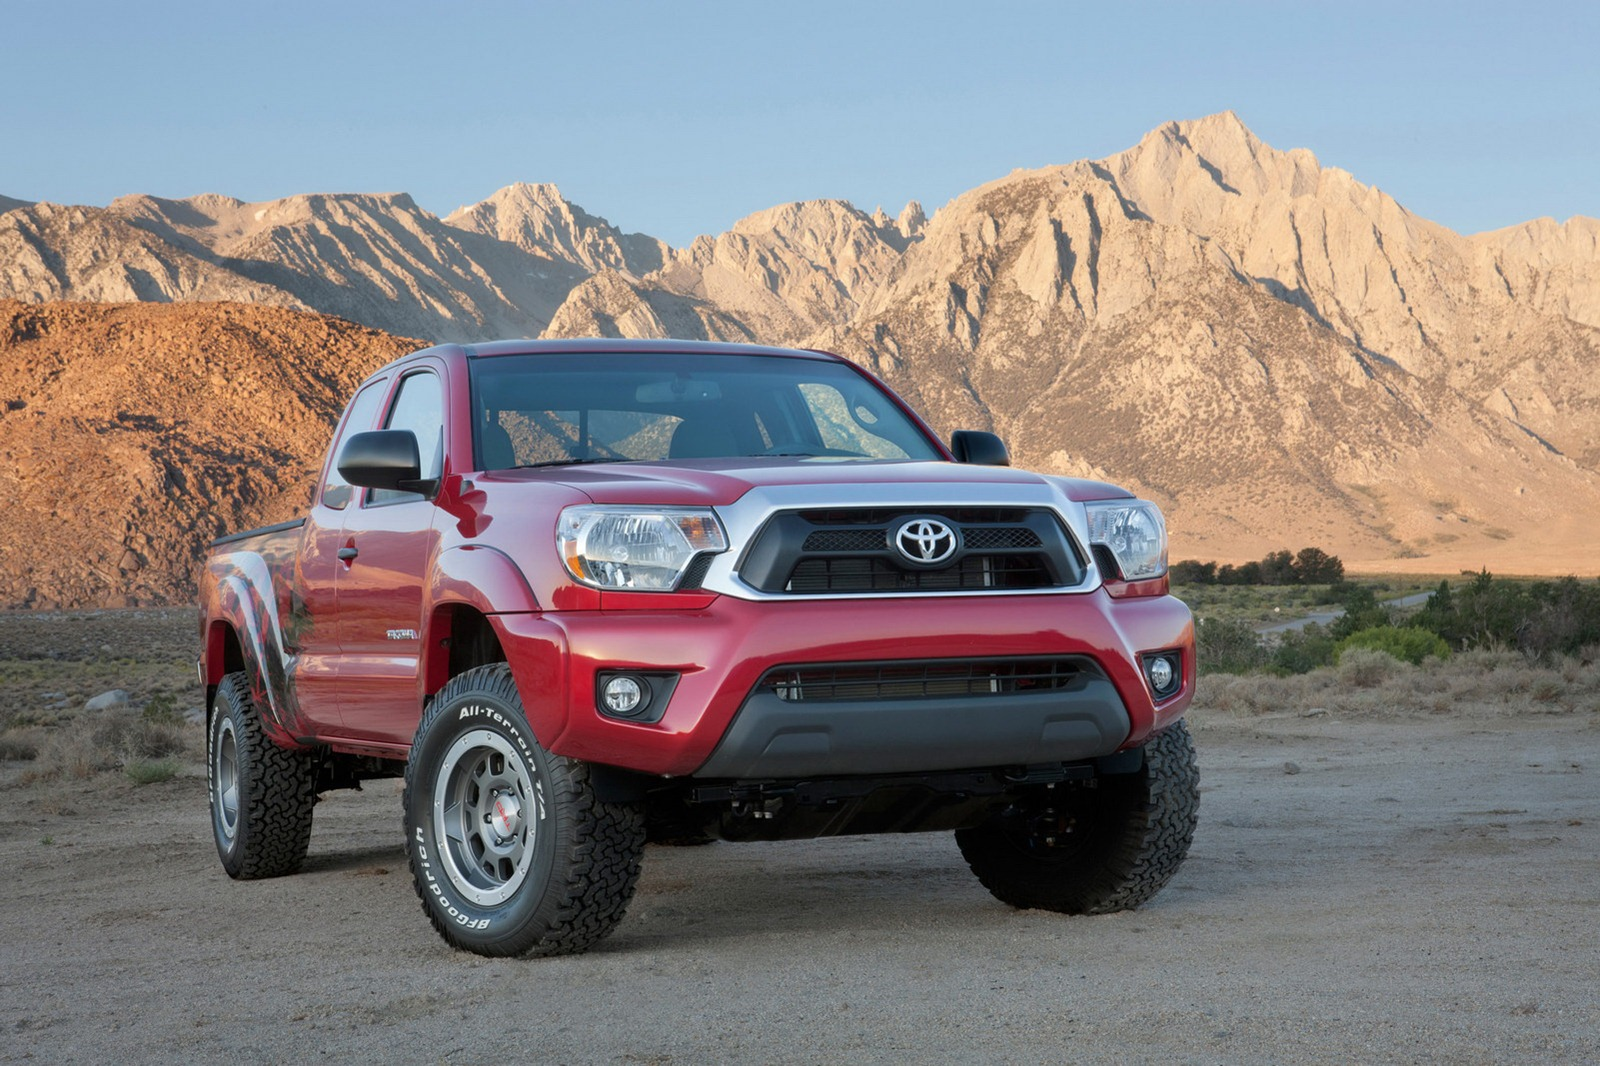 2012 toyota tacoma trd t x baja pricing autoevolution. Black Bedroom Furniture Sets. Home Design Ideas